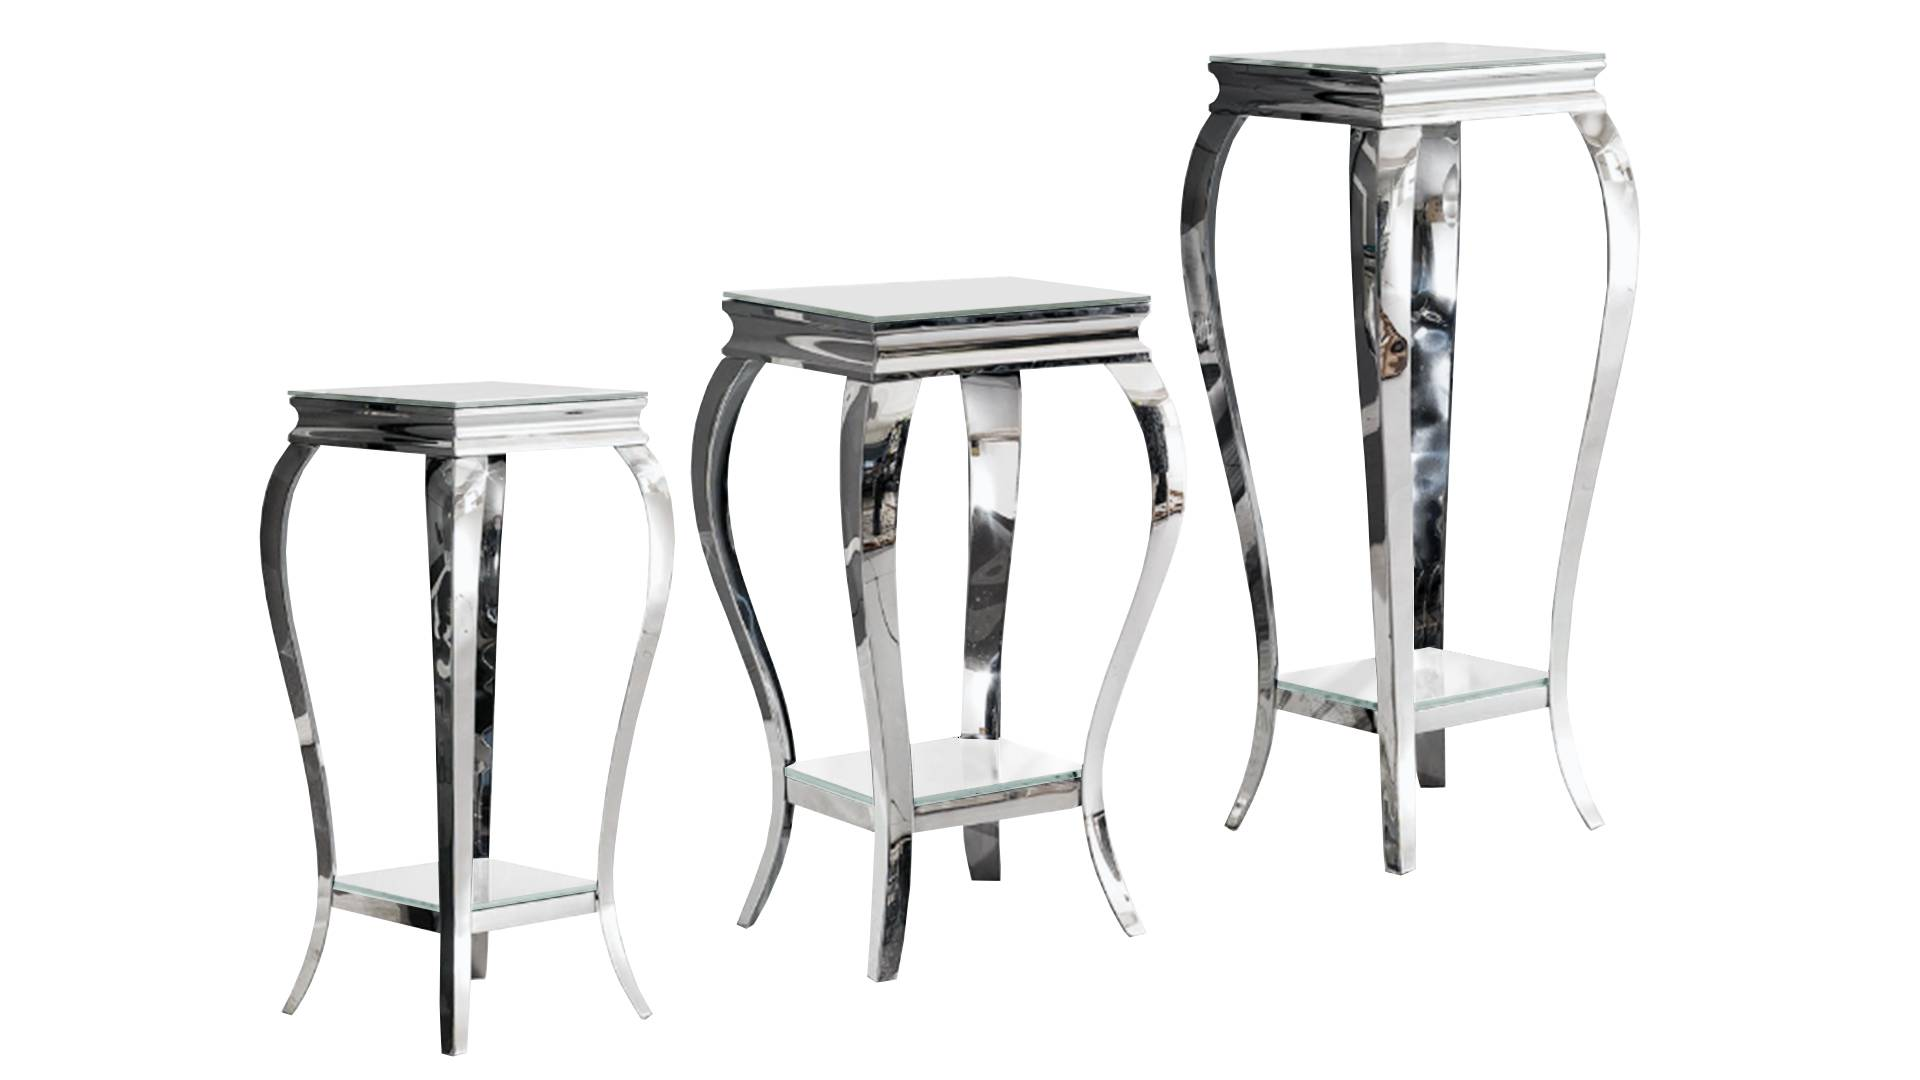 MobilierMoss Betty - Velador barroco con pies acero inoxidable